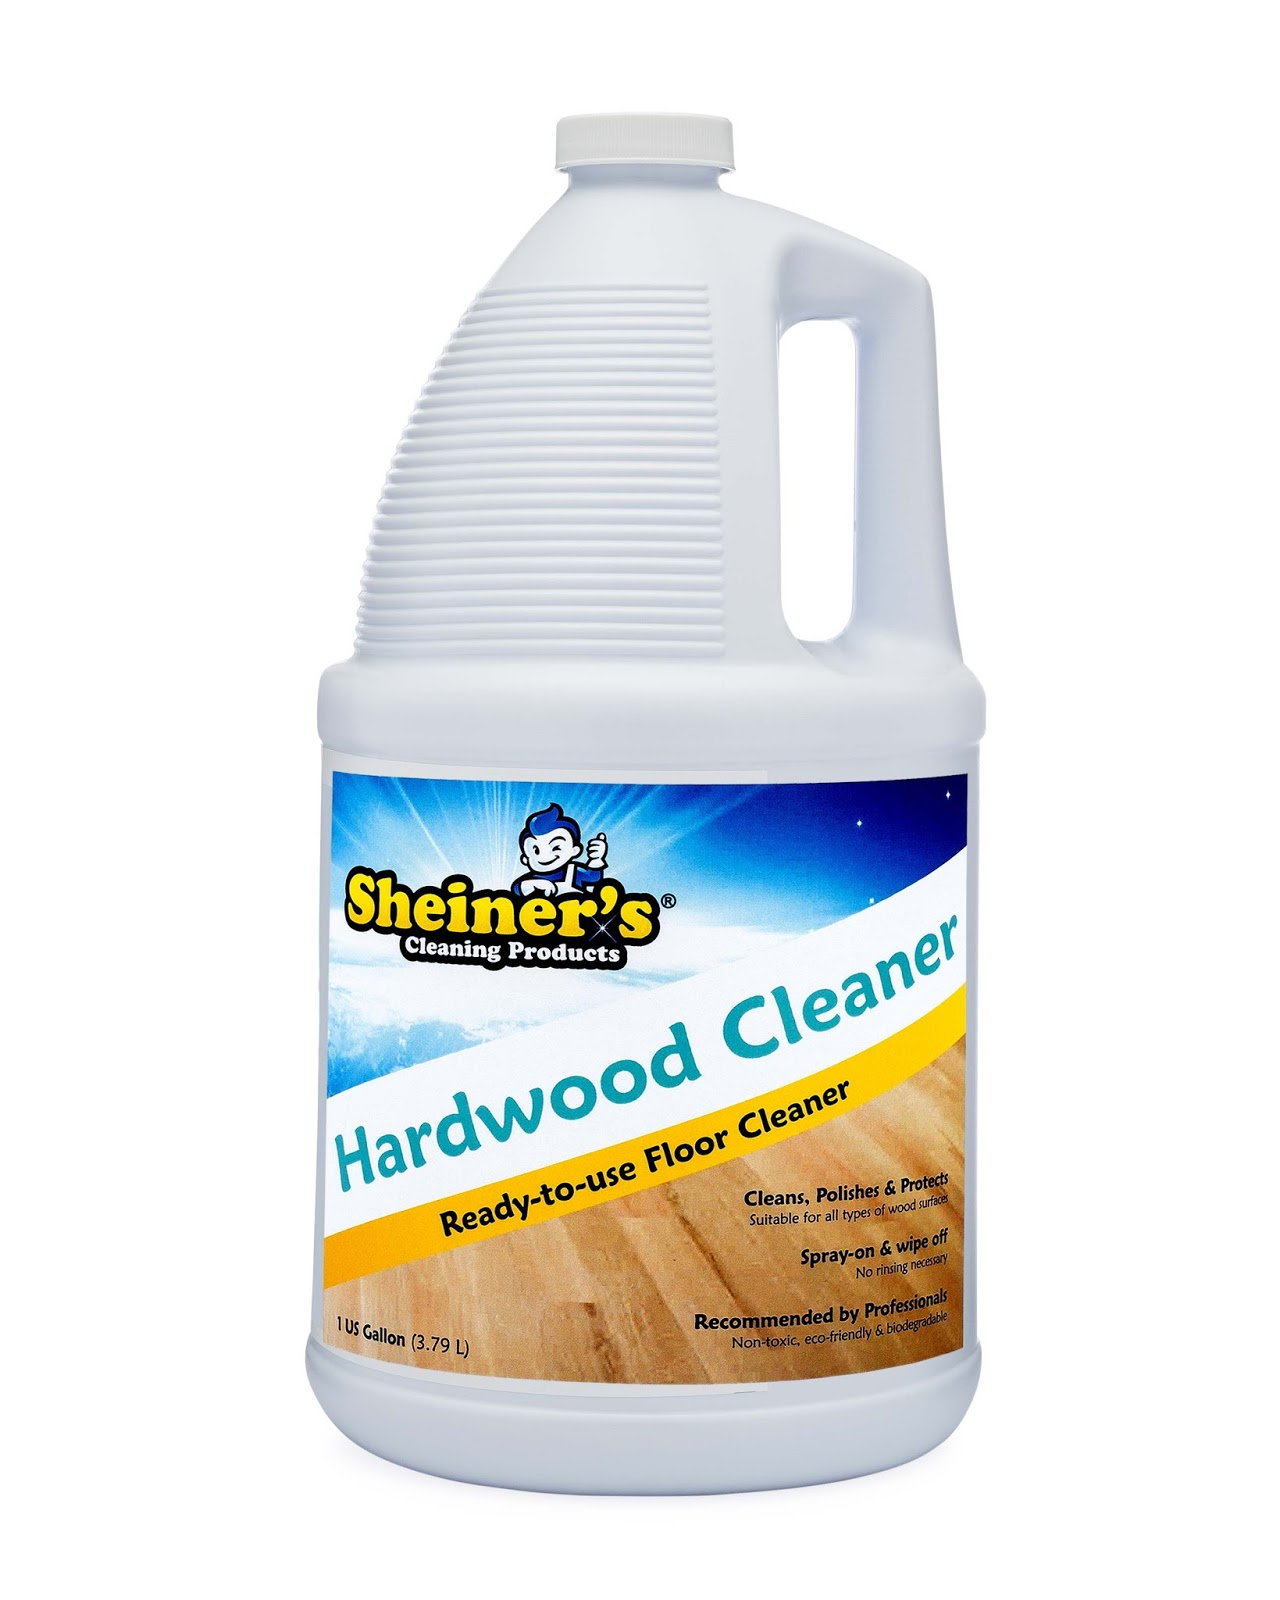 nontoxic family cleaning natural products product safe coatings floor floors cleaner wood procleaner vermont professional